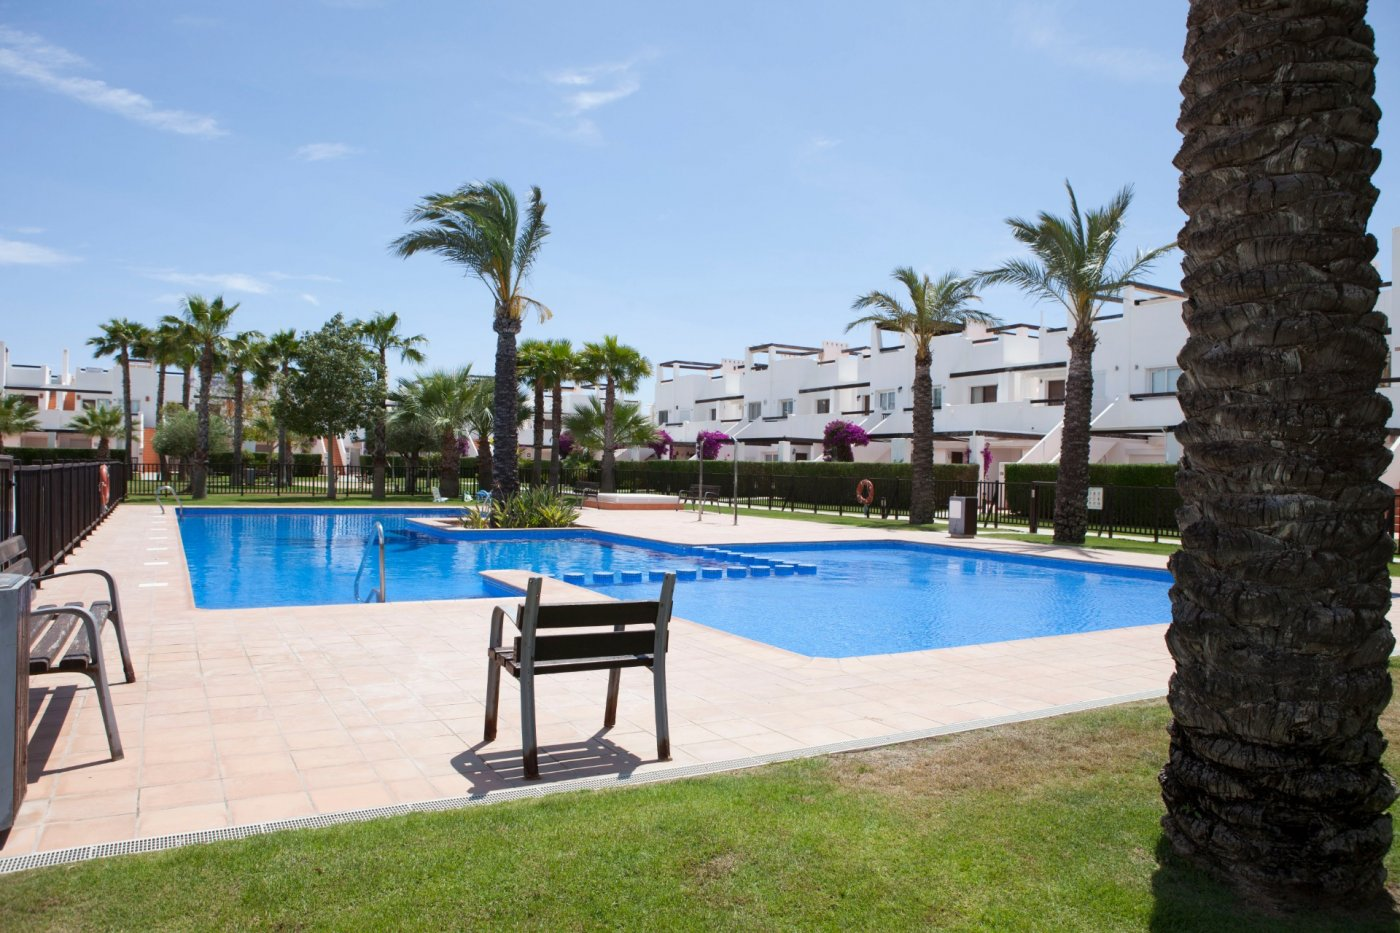 Apartment ref 3265-02831 for sale in Condado De Alhama Spain - Quality Homes Costa Cálida